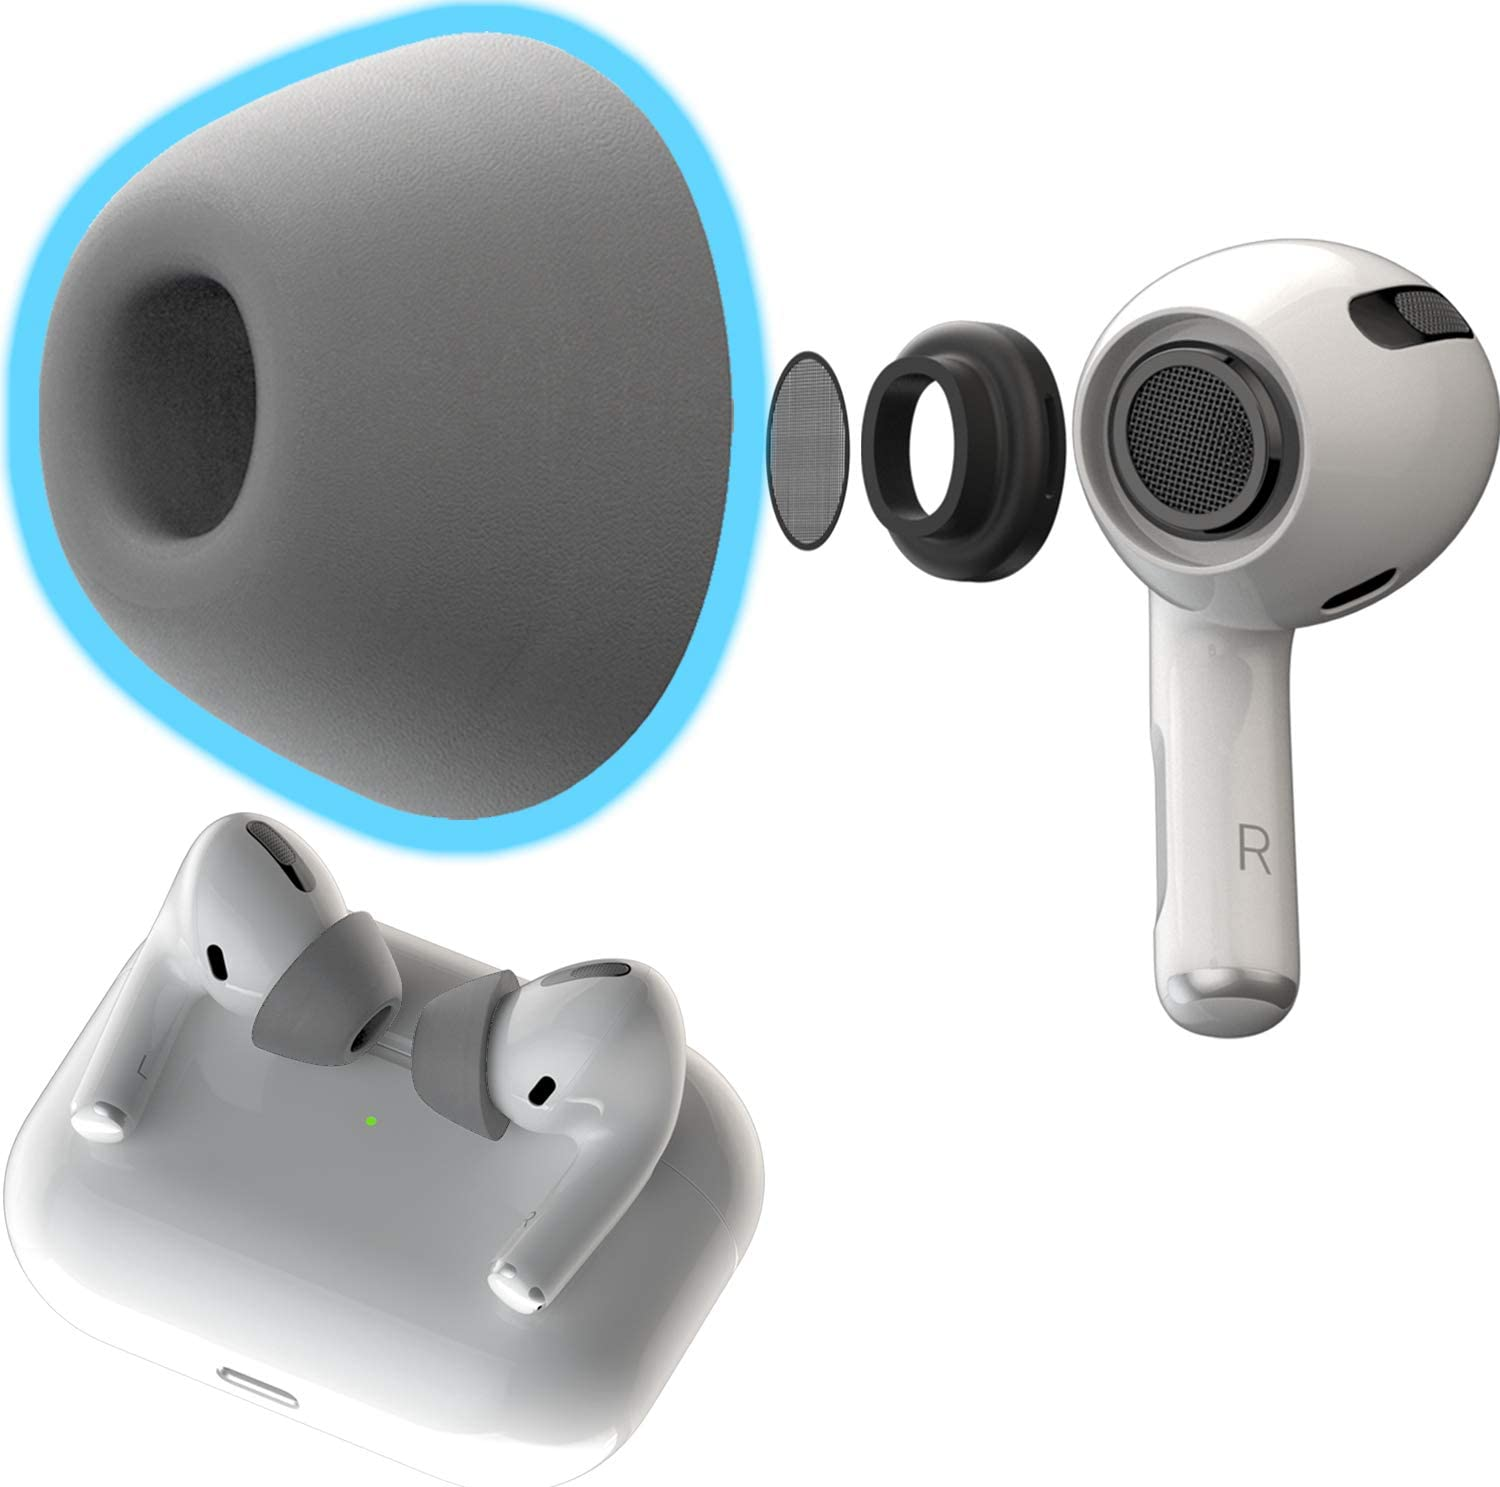 CharJenPro Memory Foam Ear Tips for AirPods Pro. Next Gen. Tips 2.0. Form Fit as seen Kickstarter. No Silicone Ear tip Pain. Ultra Comfortable Replacement Ear Tips. (2 Sizes: S/M and M/L, Space Grey)